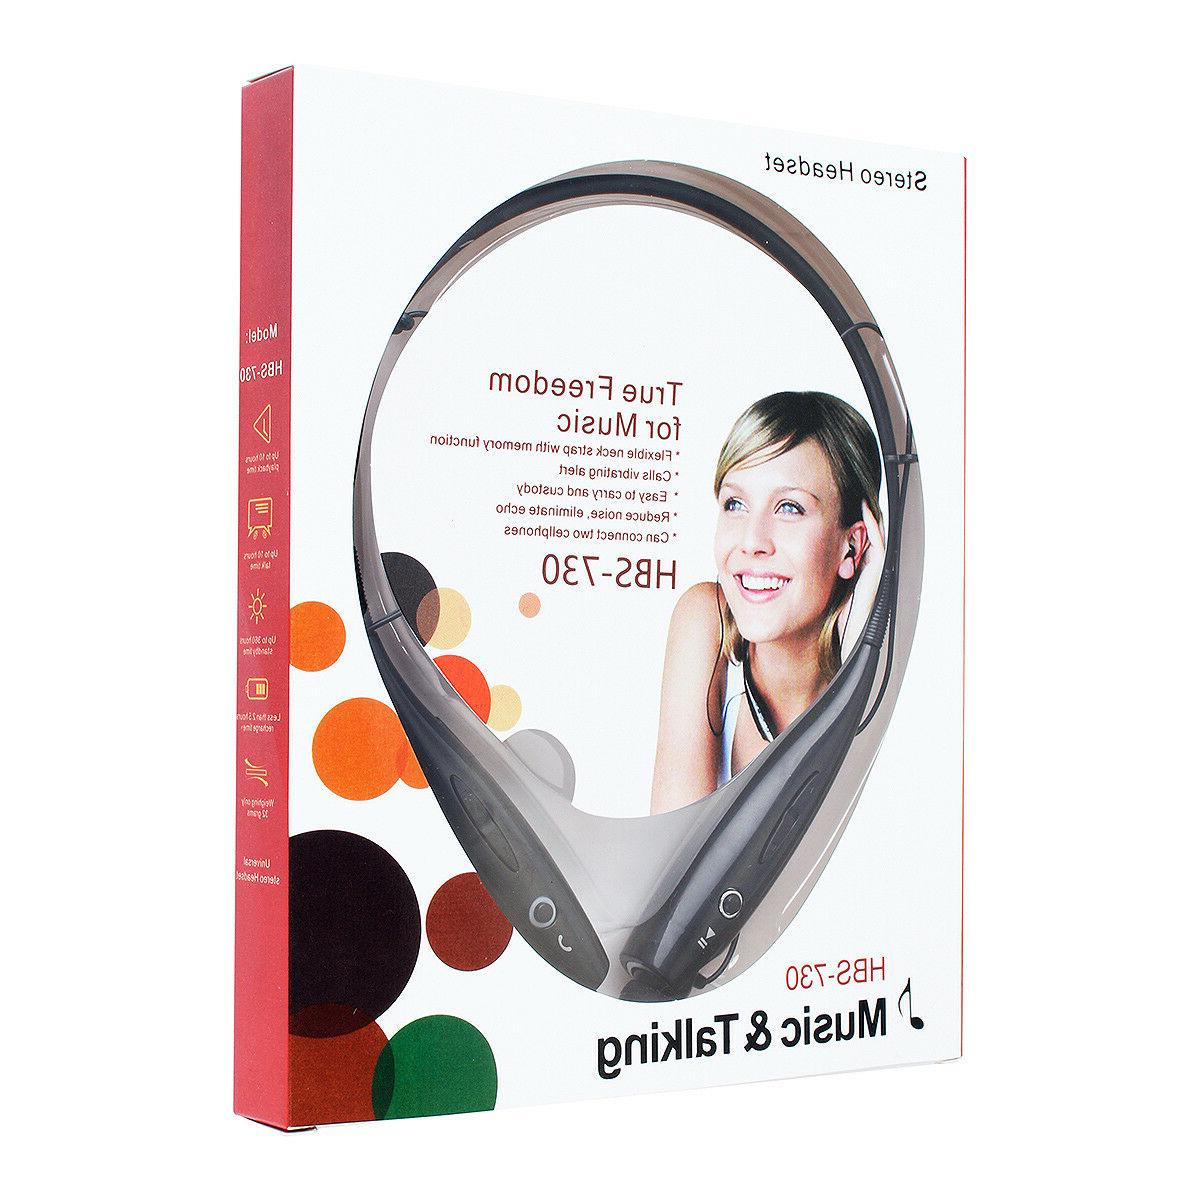 Wireless Stereo Earphone Neckband with Mic